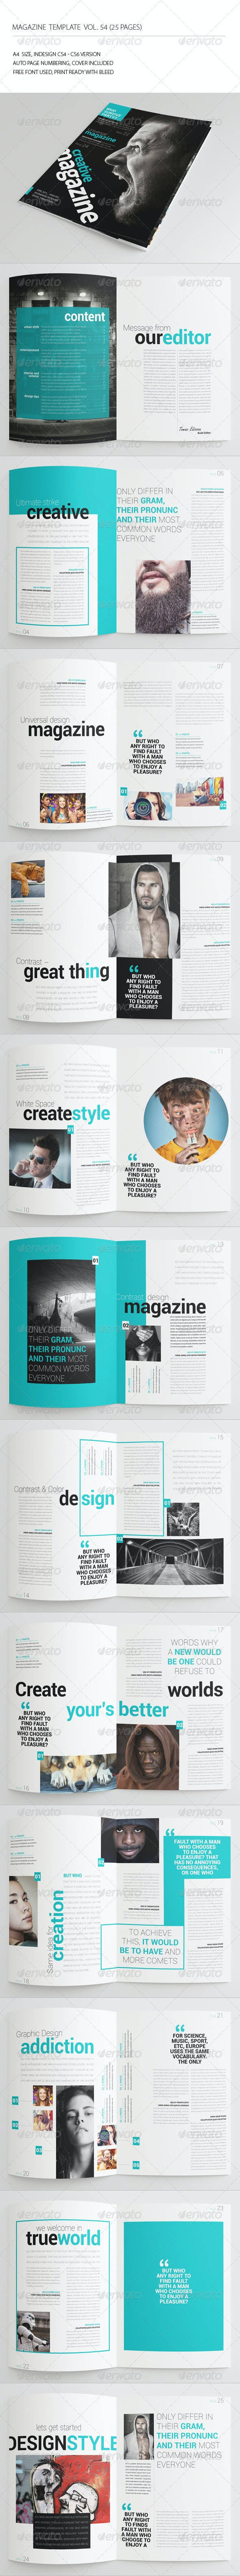 25 Pages Universal Magazine Vol54 - Magazines Print Templates